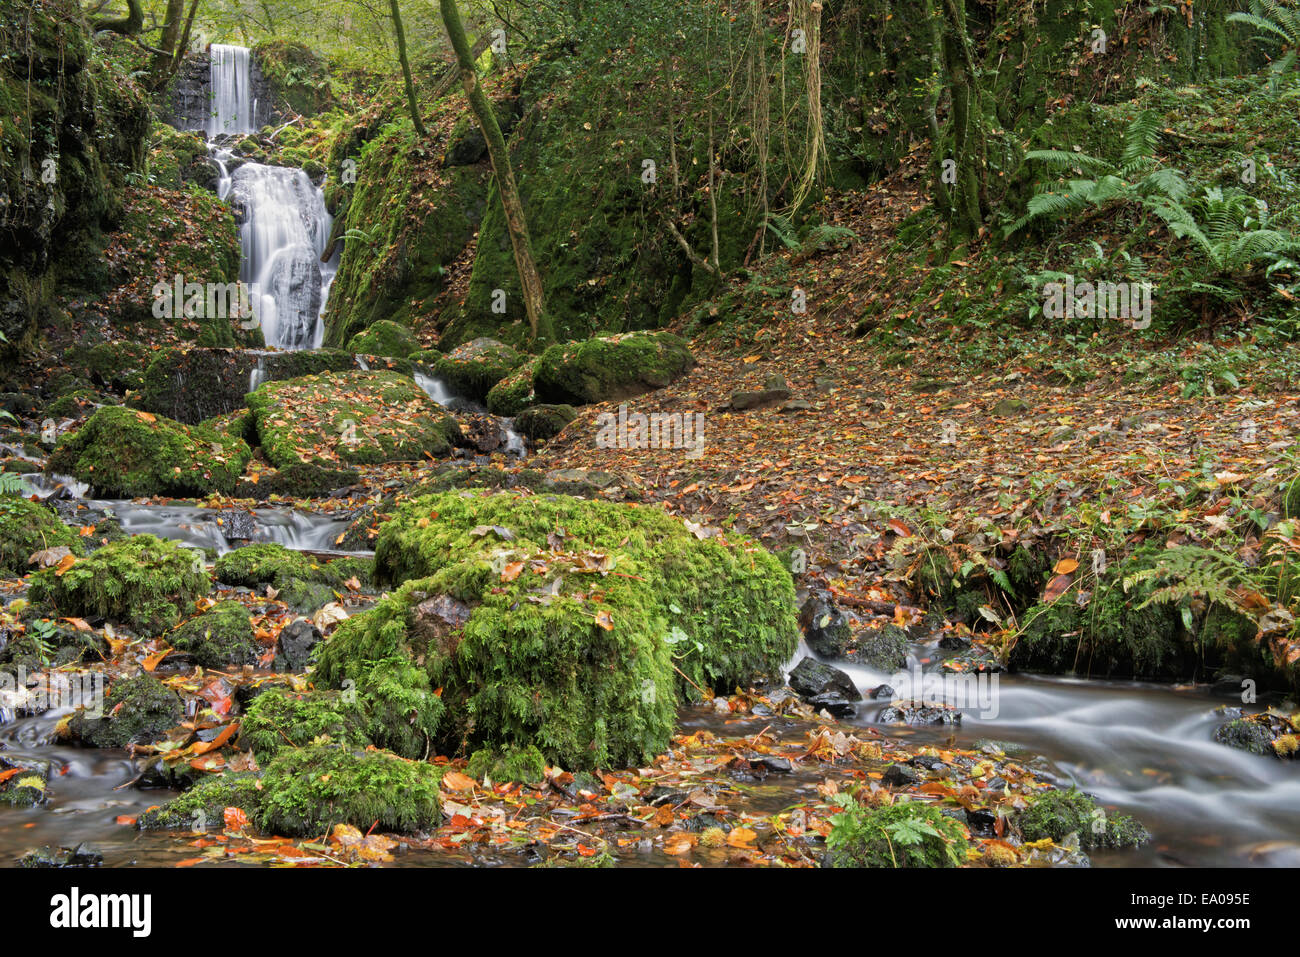 Clampitt Falls part of the Canonteign Falls Waterfall system in autumn near Chudleigh, Dartmoor National Park,  - Stock Image